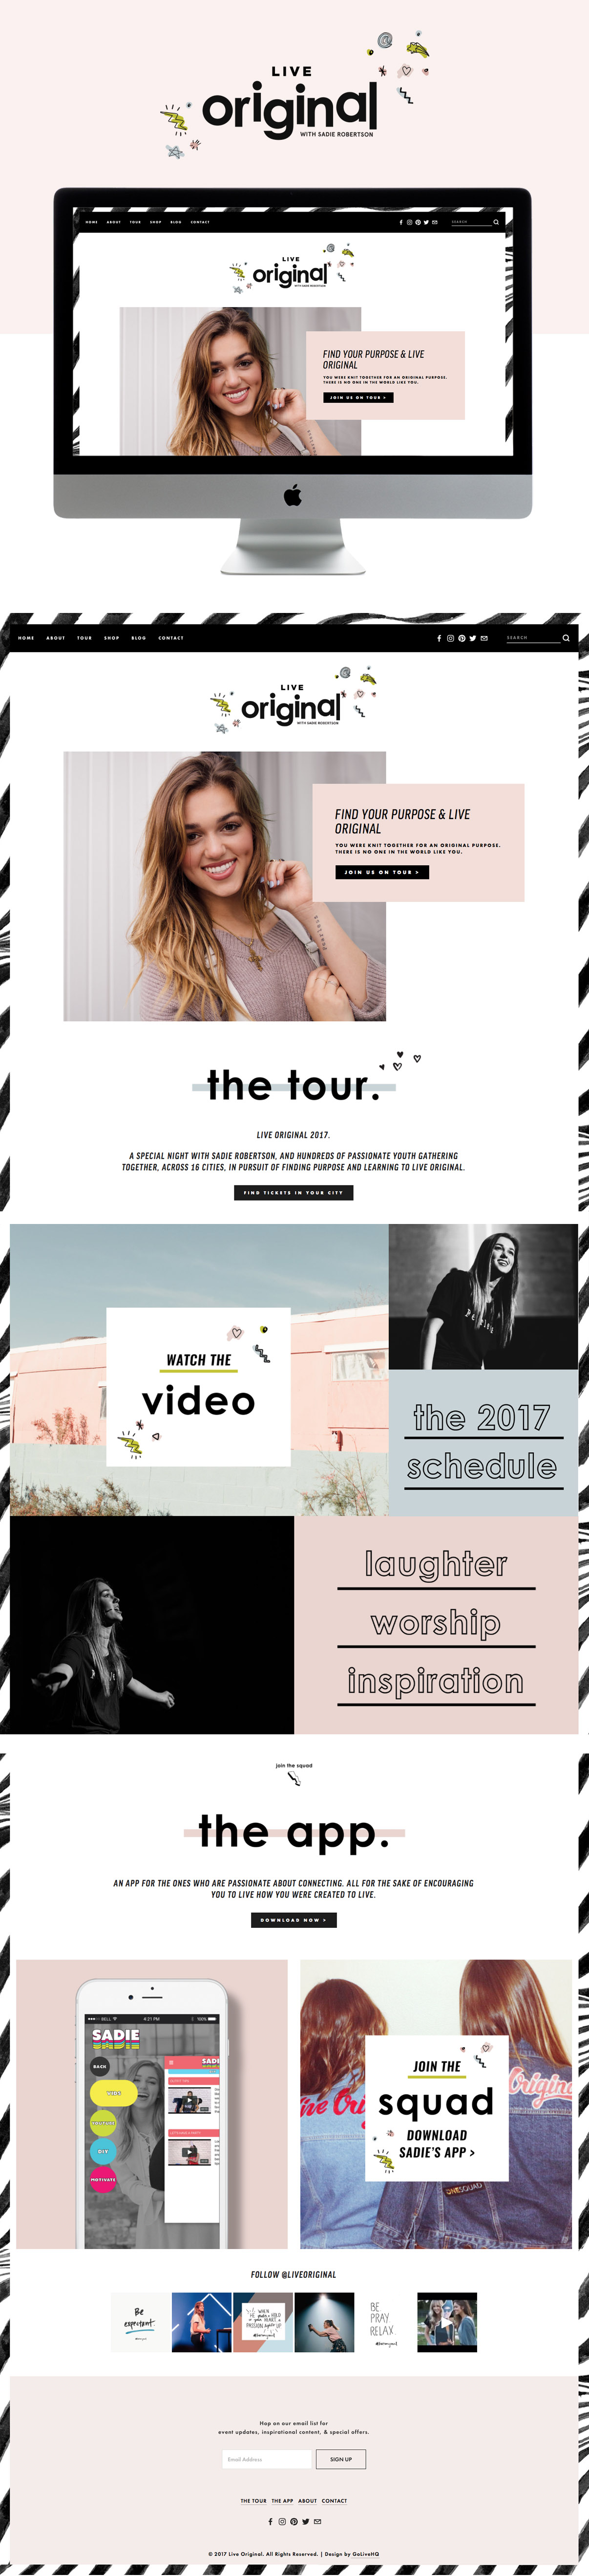 funky edgy squarespace inspiration